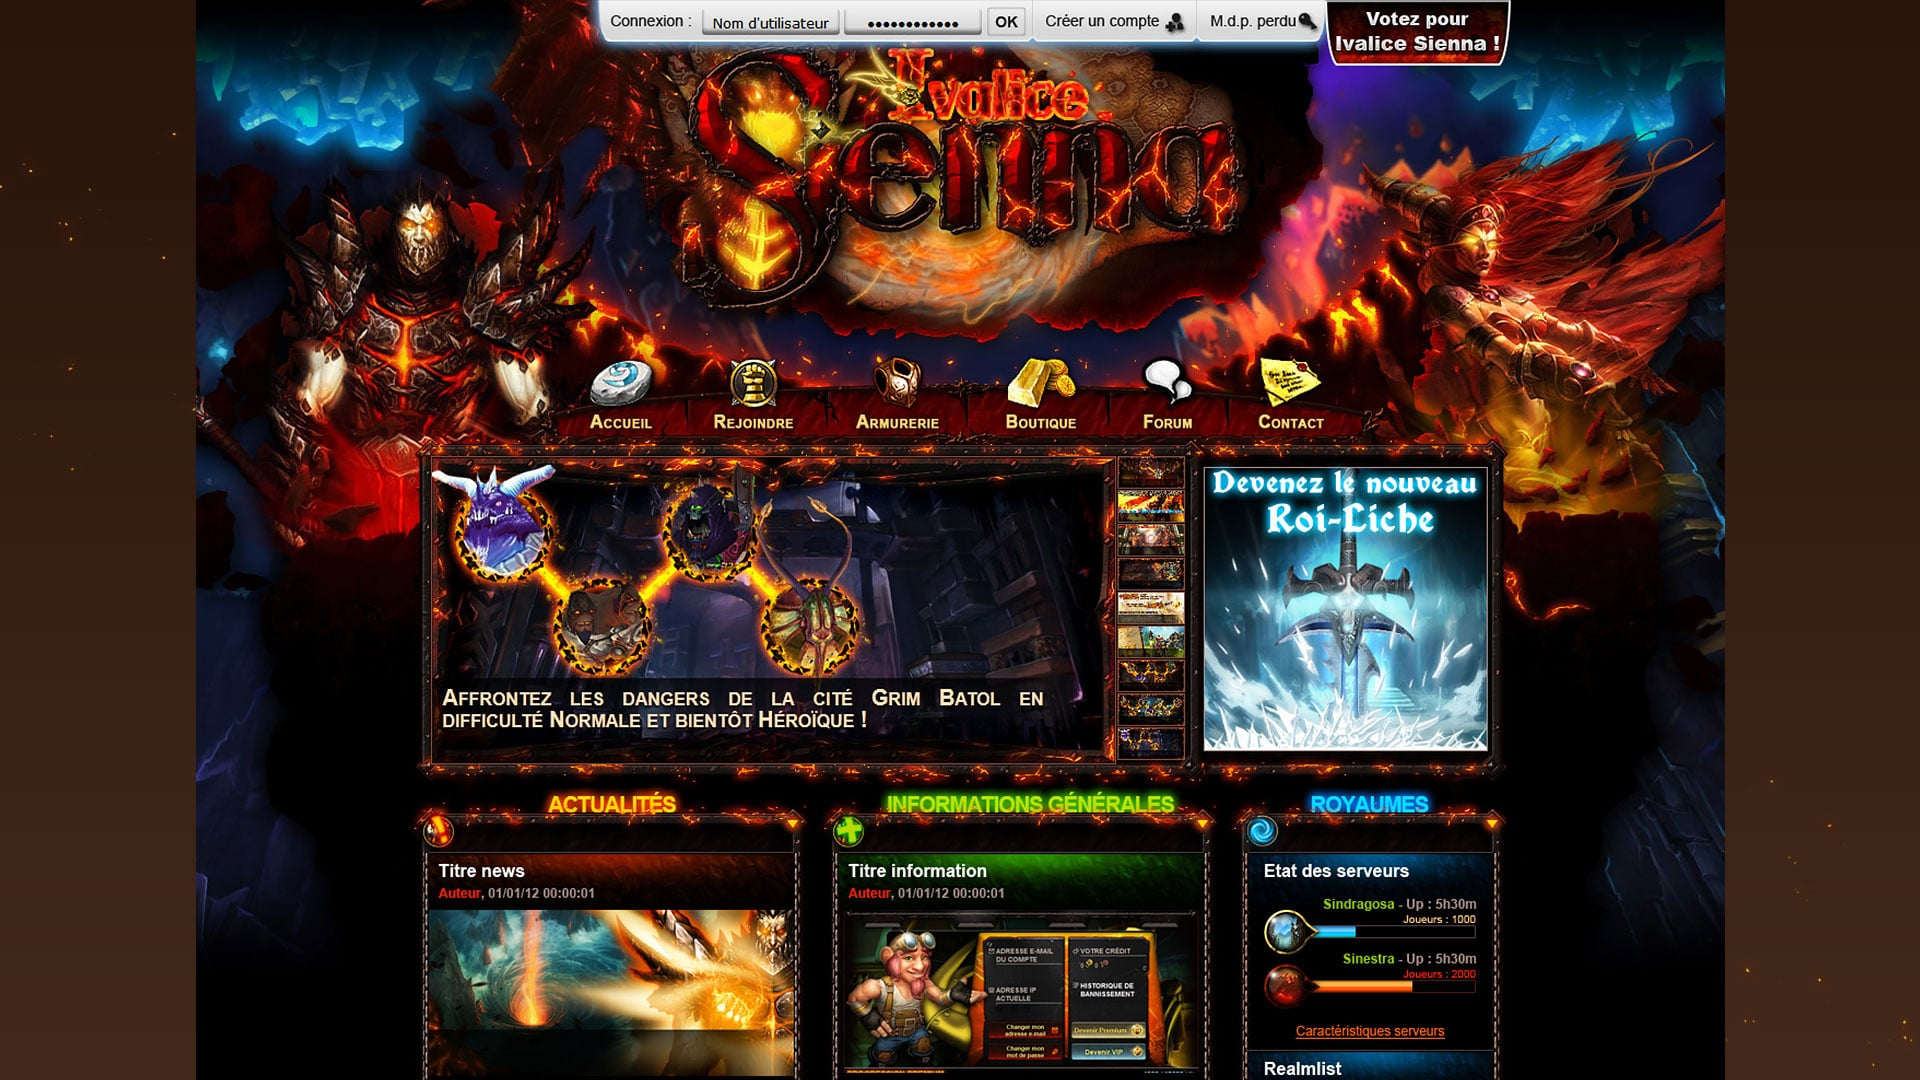 World of Warcraft Community - Website design